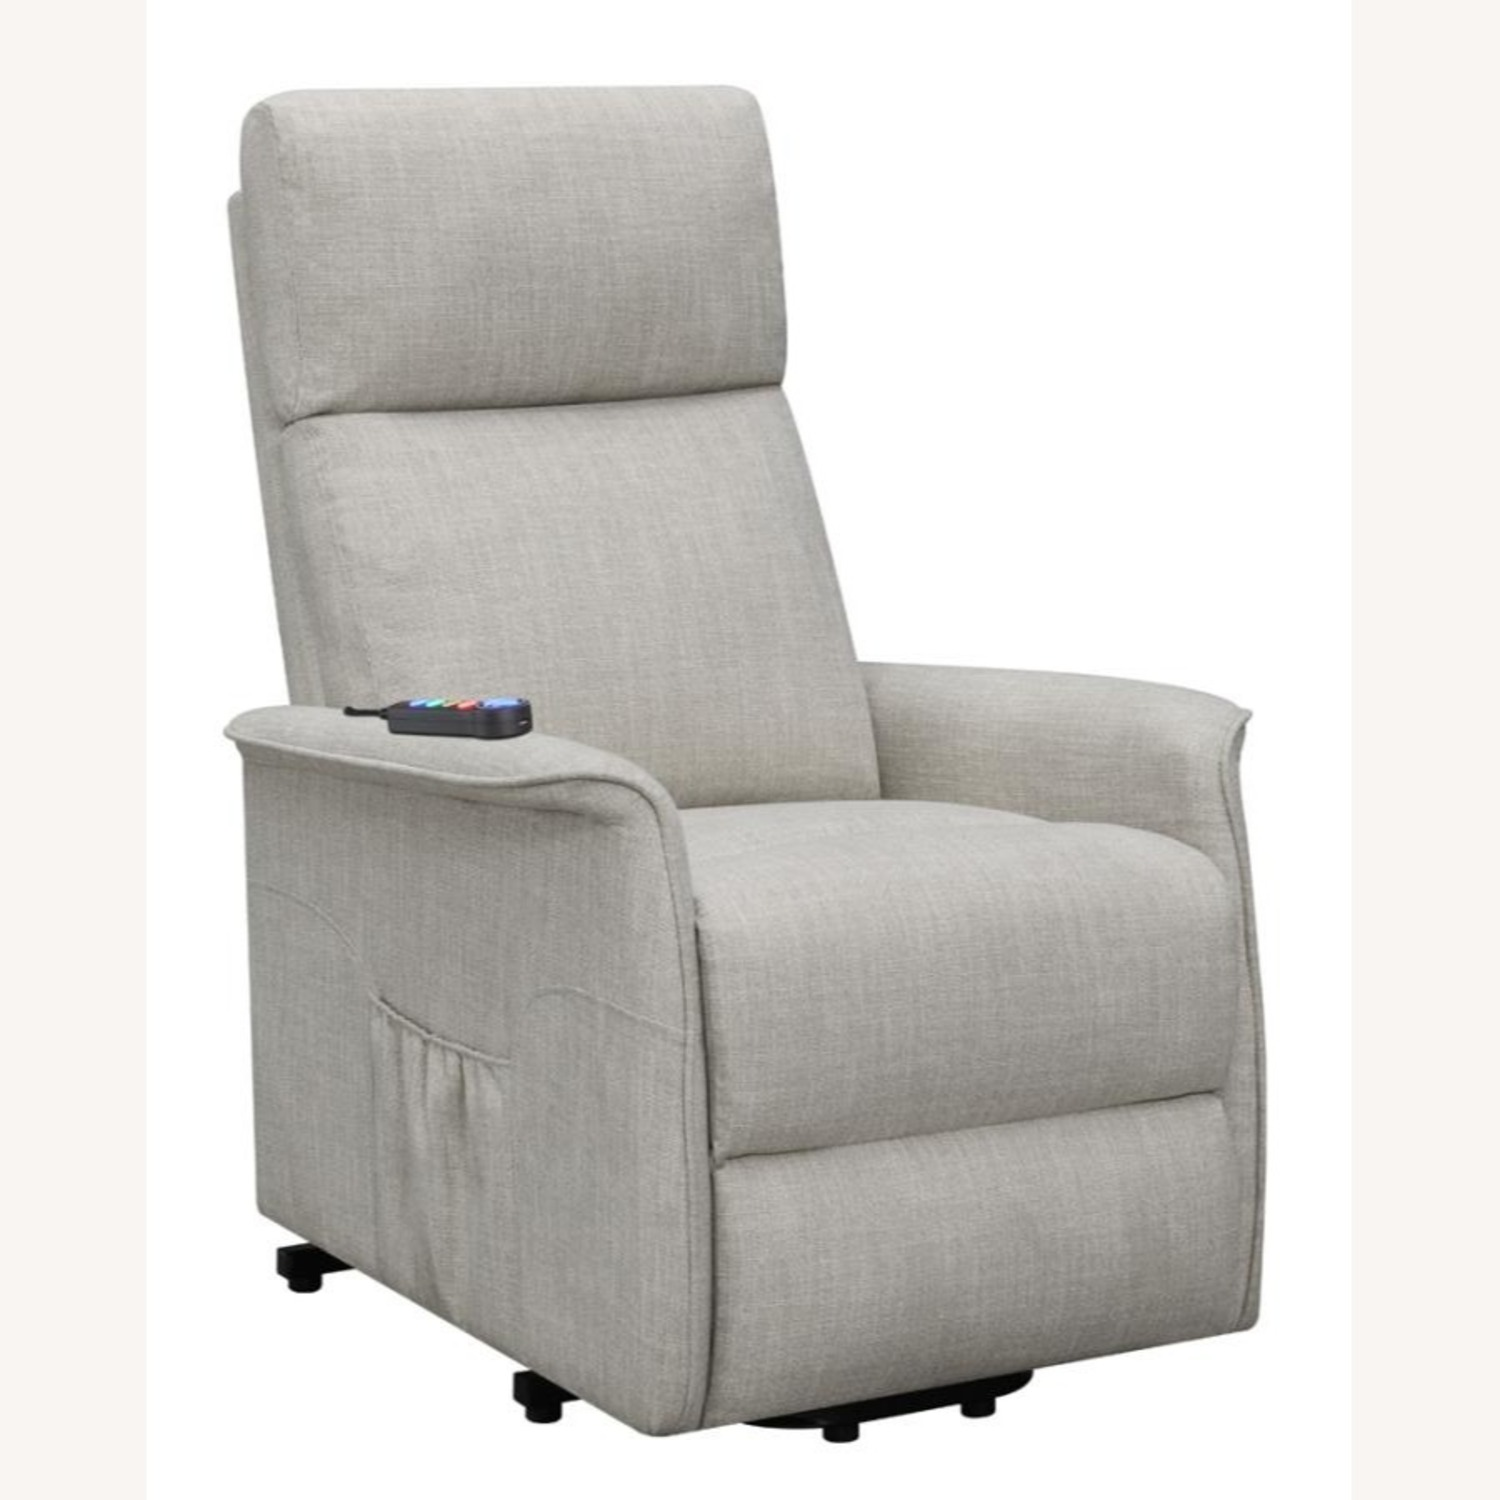 Power Lift Recliner Tufted In Beige Fabric - image-0